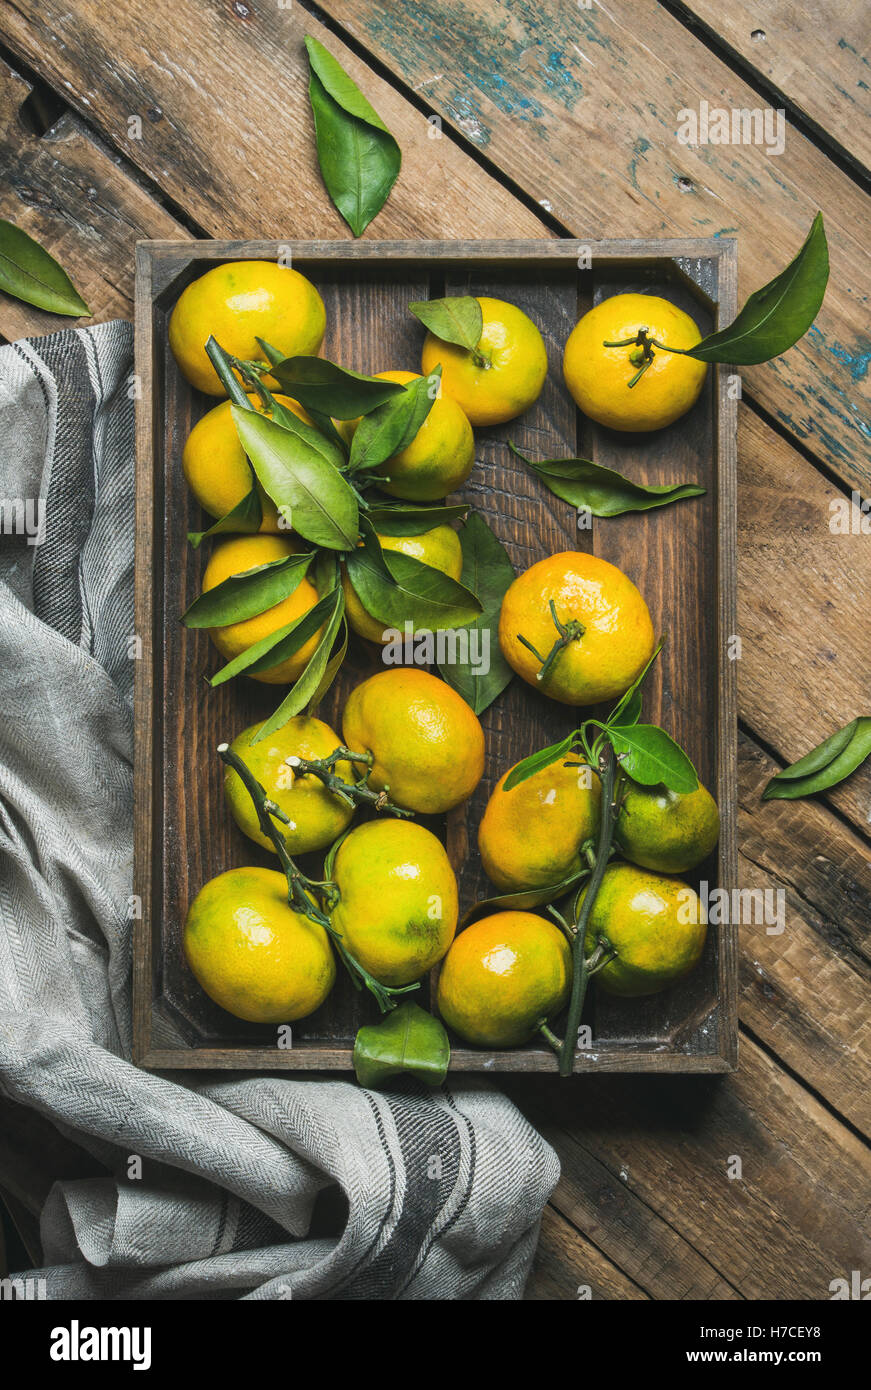 Fresh picked Mediterranean tangerines with green leaves in crate over rustic wooden background, top view, vertical - Stock Image